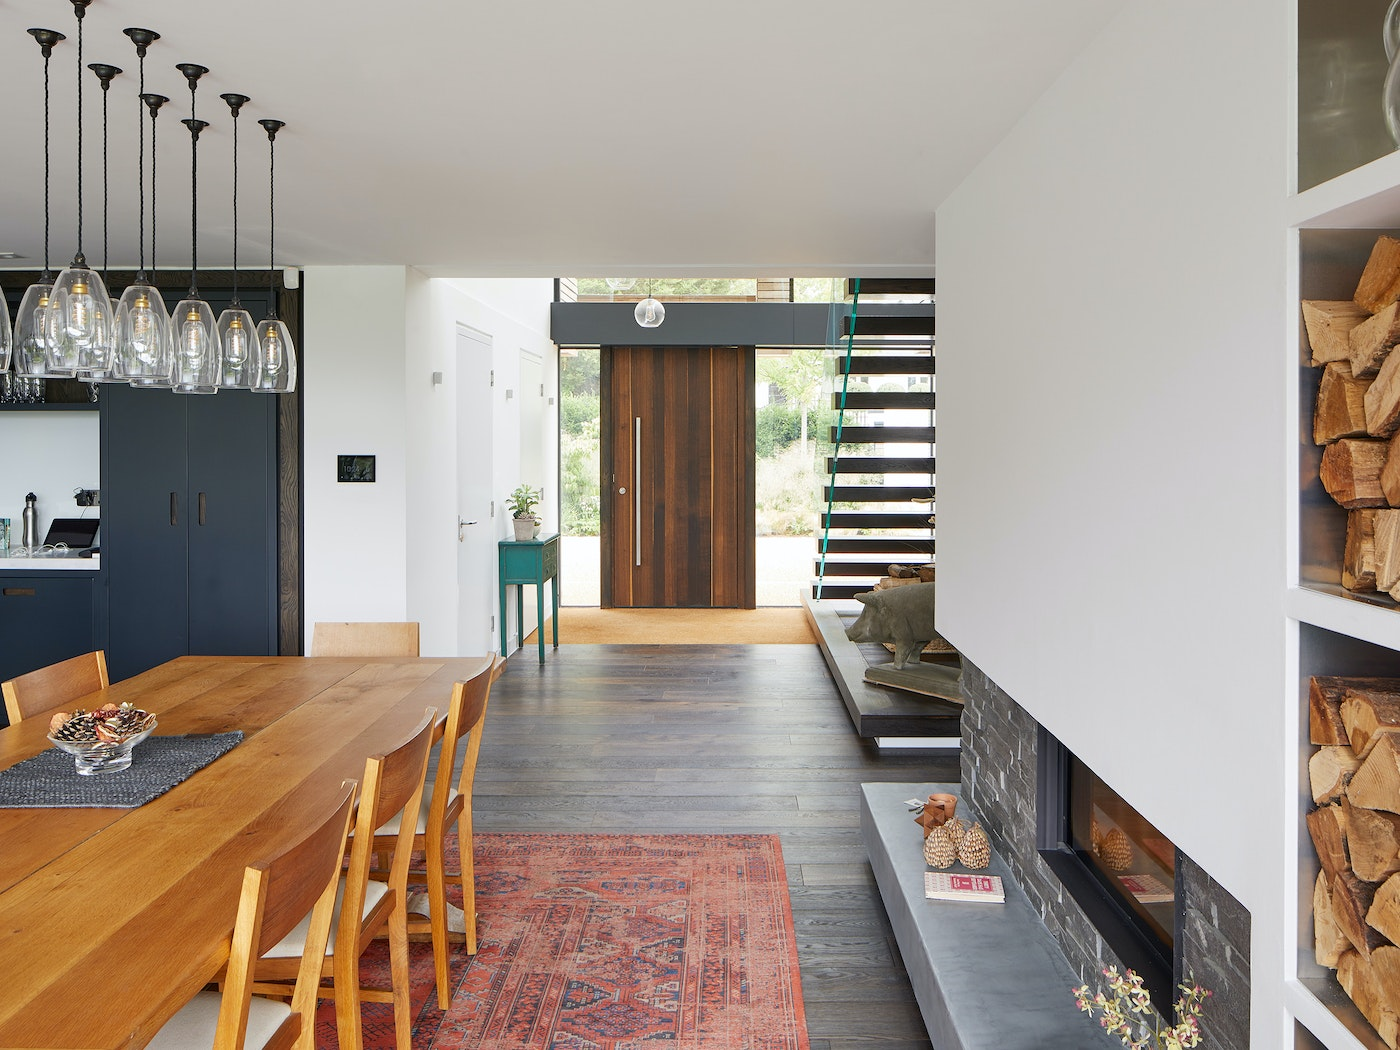 we love this view of the door from kitchen